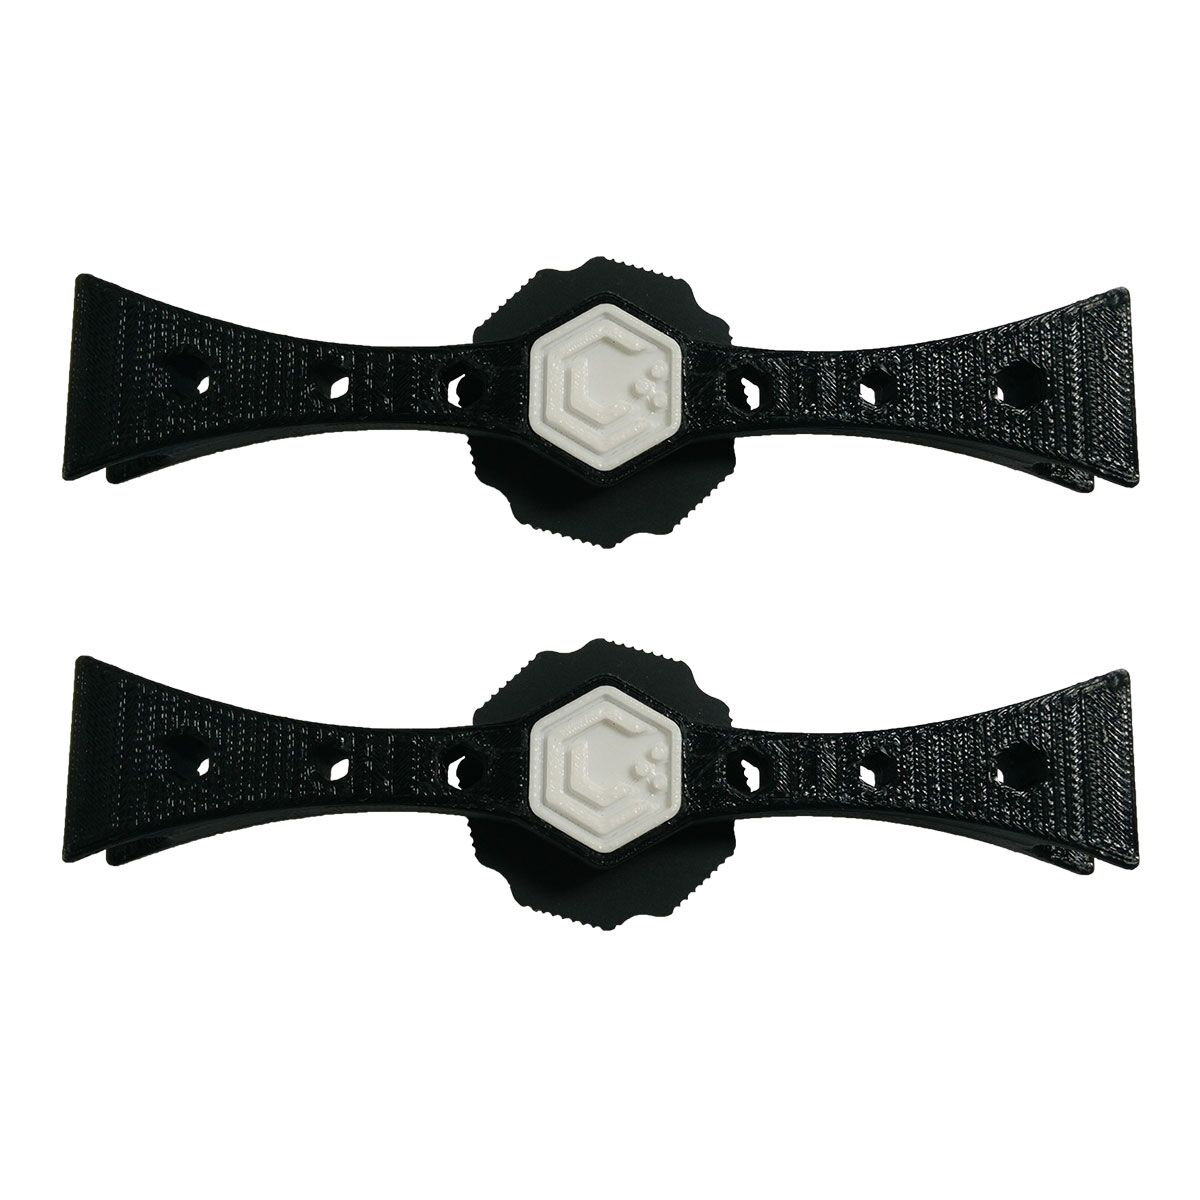 Lume Cube Black Autel X-Star Mounts